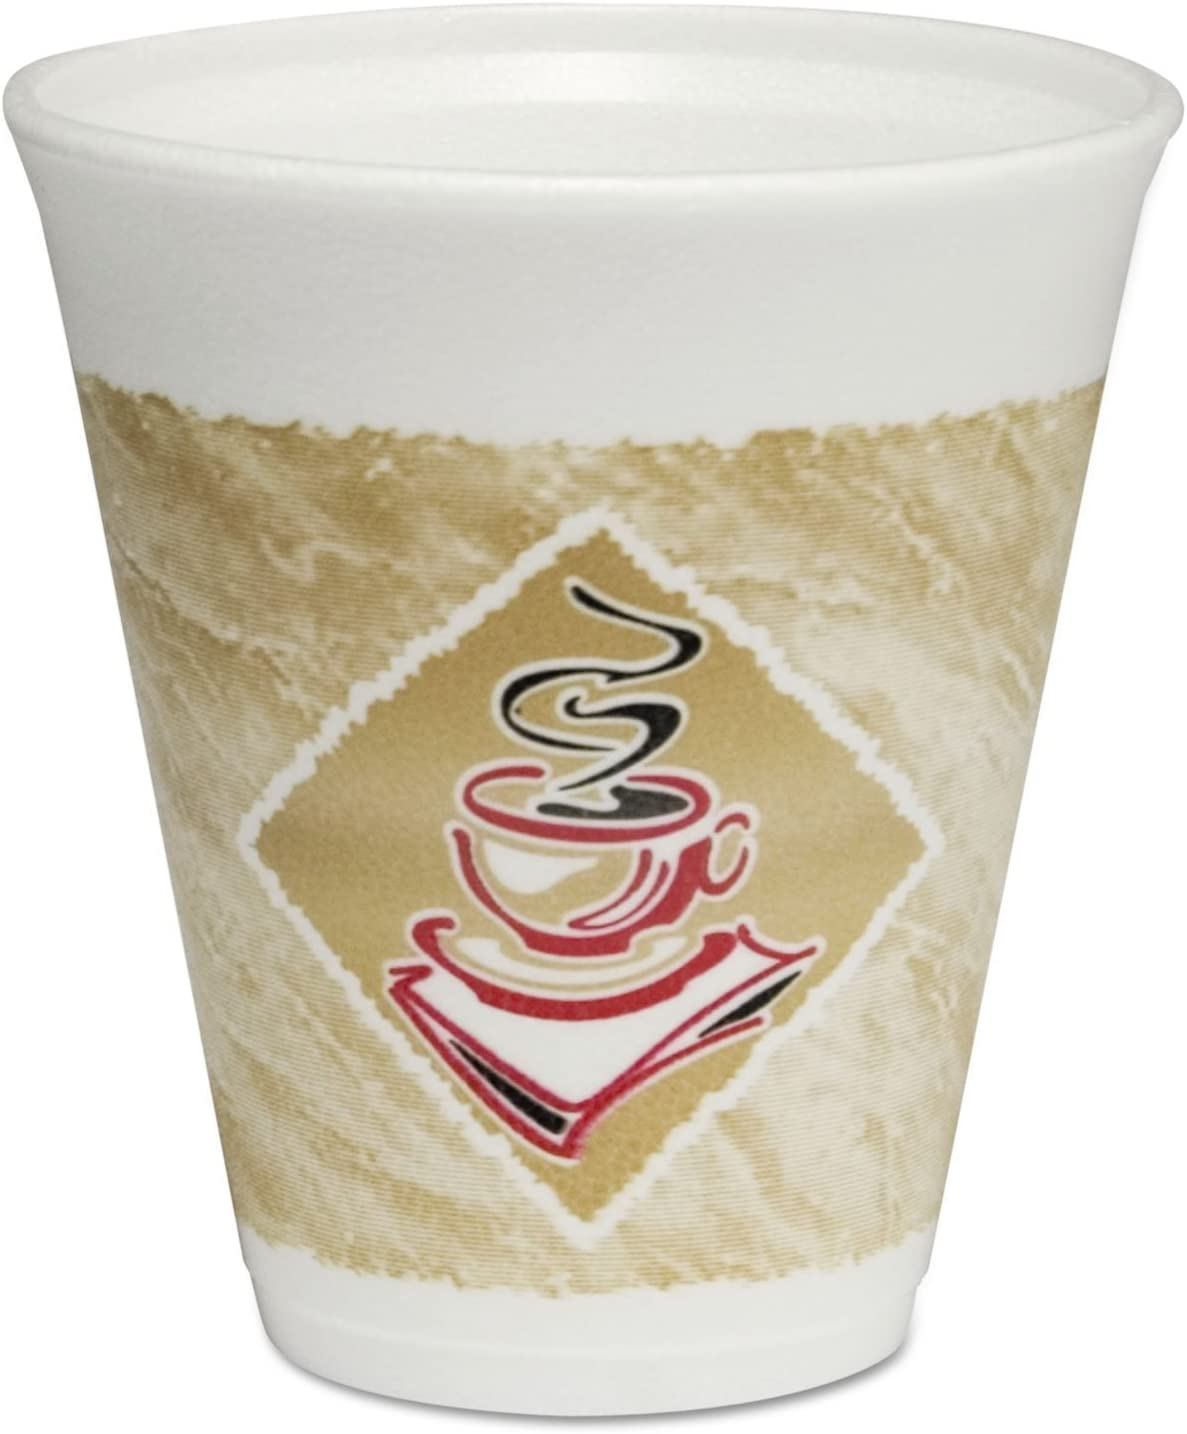 DART CONTAINER CORPORATION 12X16G Thermo-Glaze Cafe G Styrofoam Coffee Cups (1000 Per Case), Red/Brown/Black, 12 oz